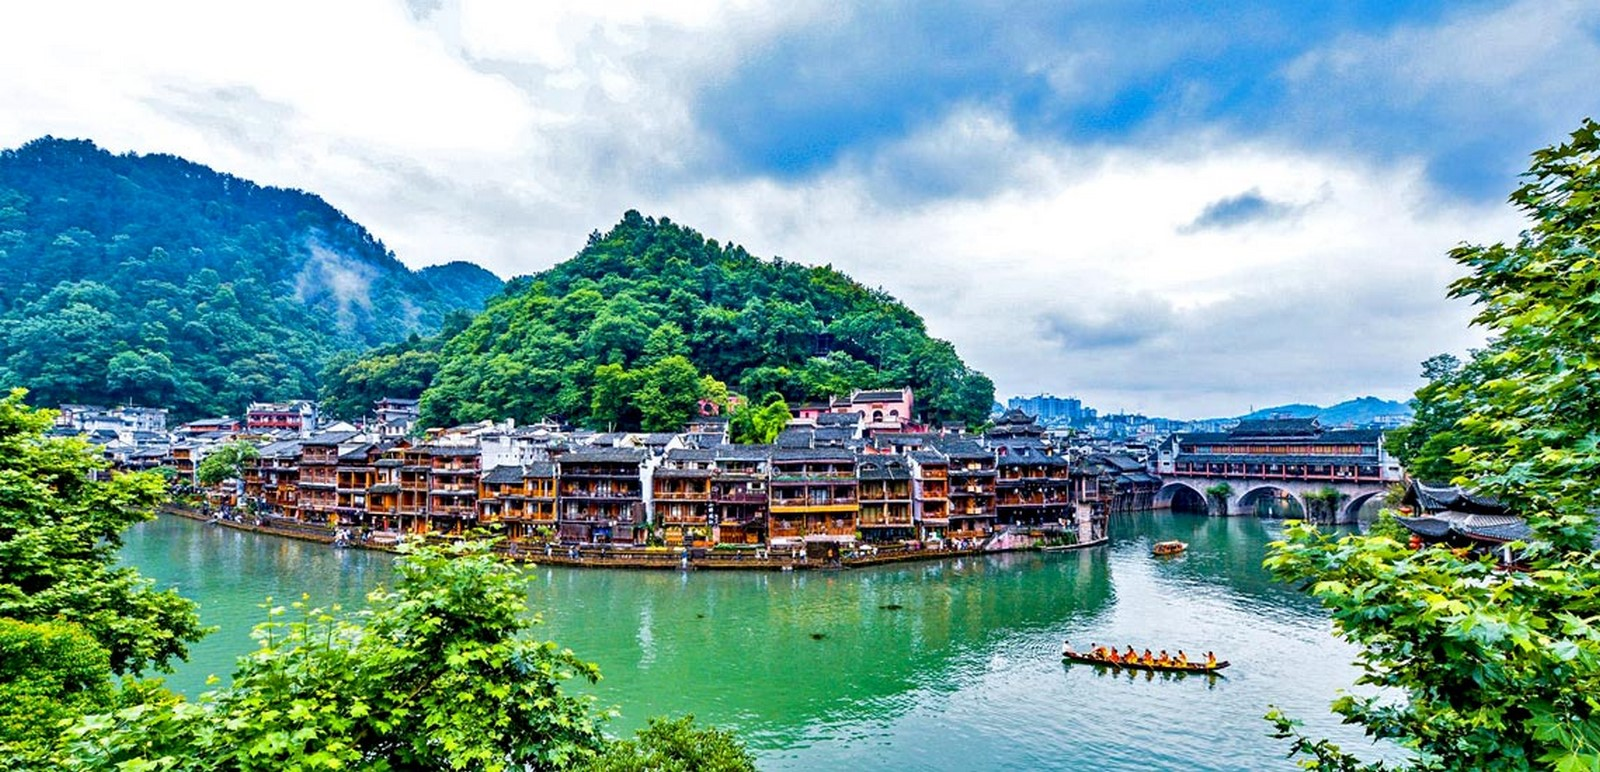 15 Famous villages around the world, that architects must visit - Sheet3